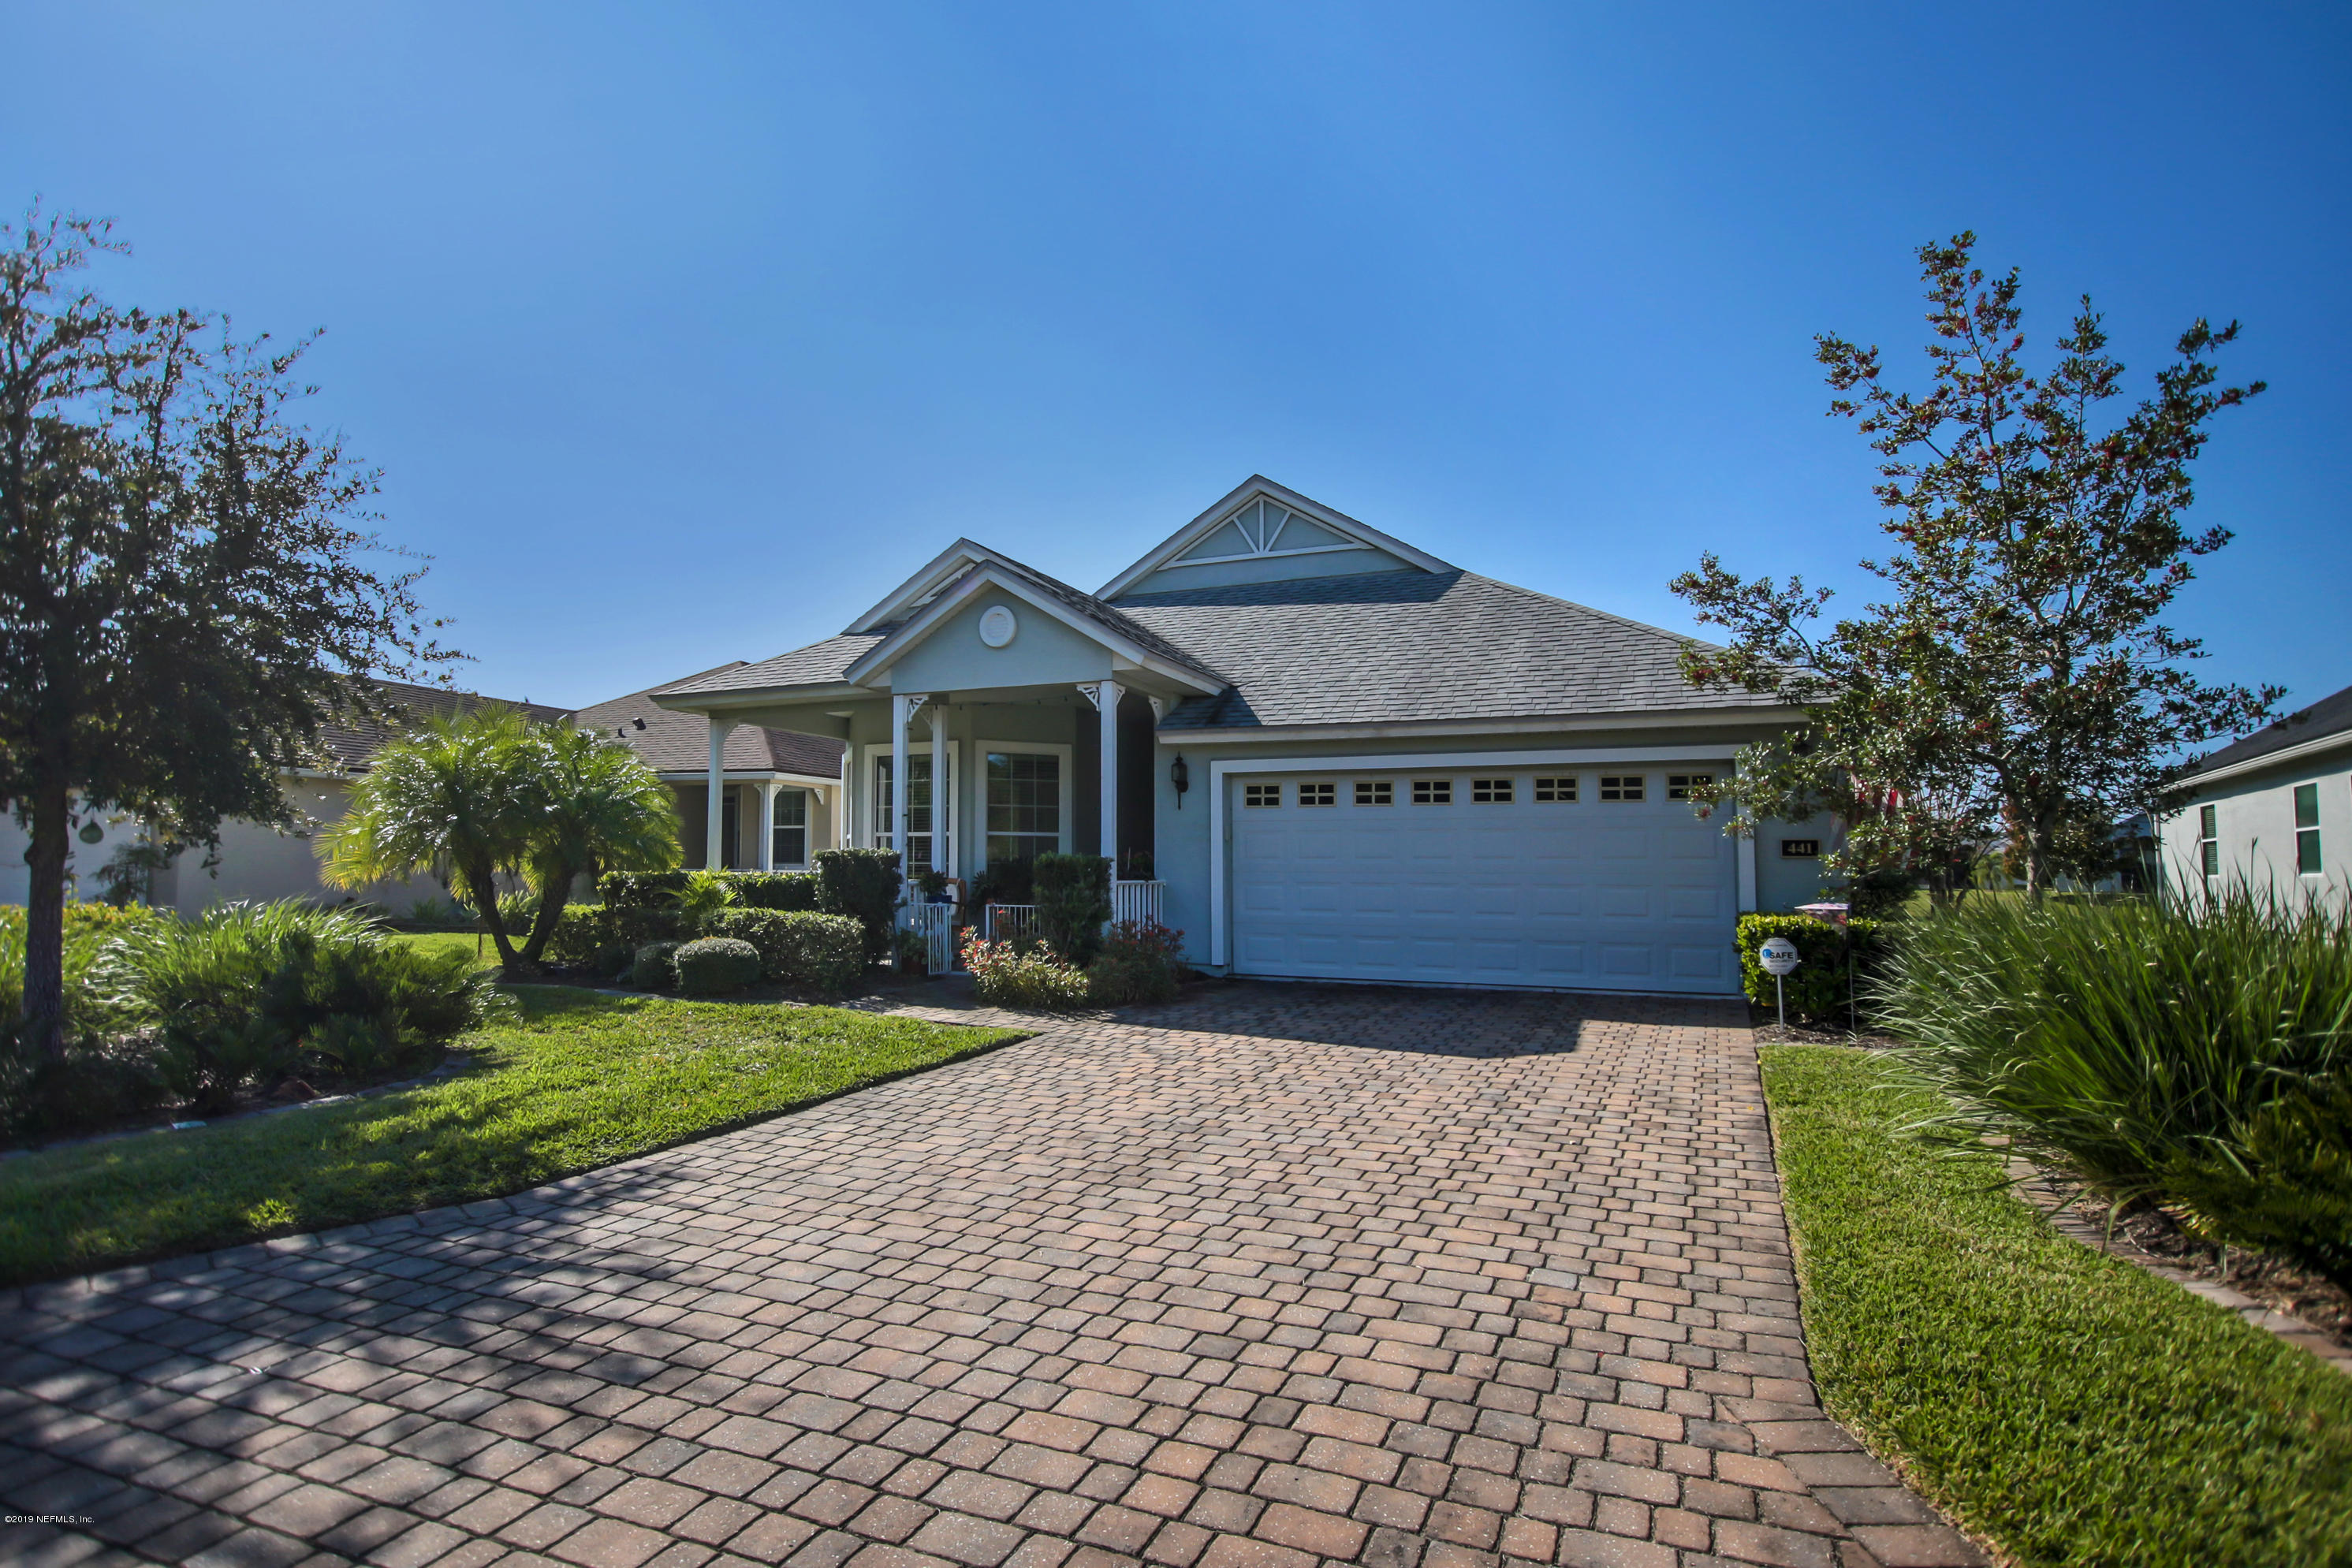 441 LEGACY, ST AUGUSTINE, FLORIDA 32092, 3 Bedrooms Bedrooms, ,2 BathroomsBathrooms,Residential,For sale,LEGACY,1027832